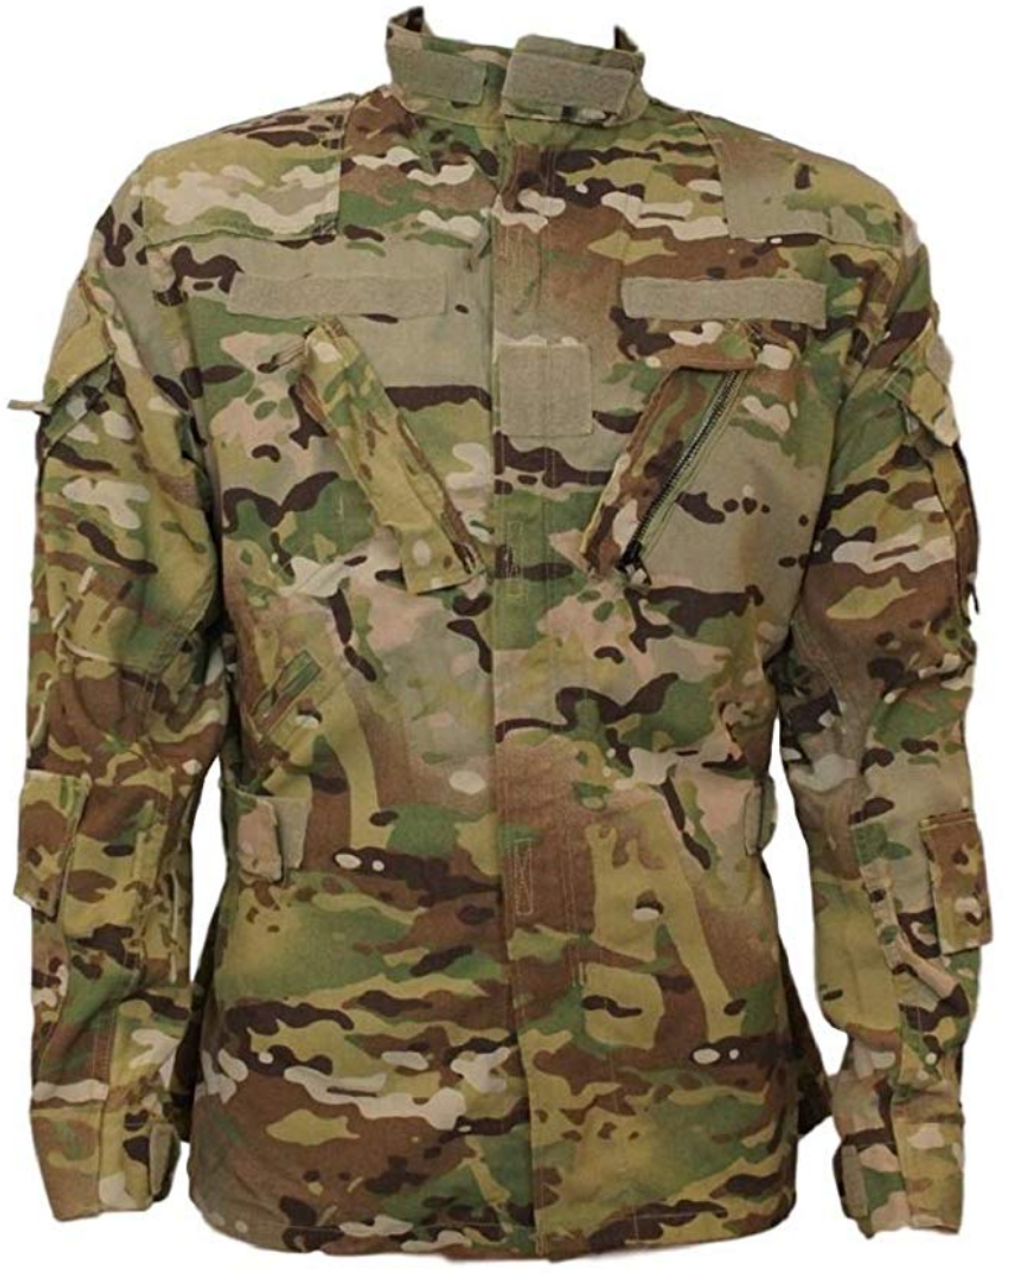 Image result for US Military's OCP Jacket